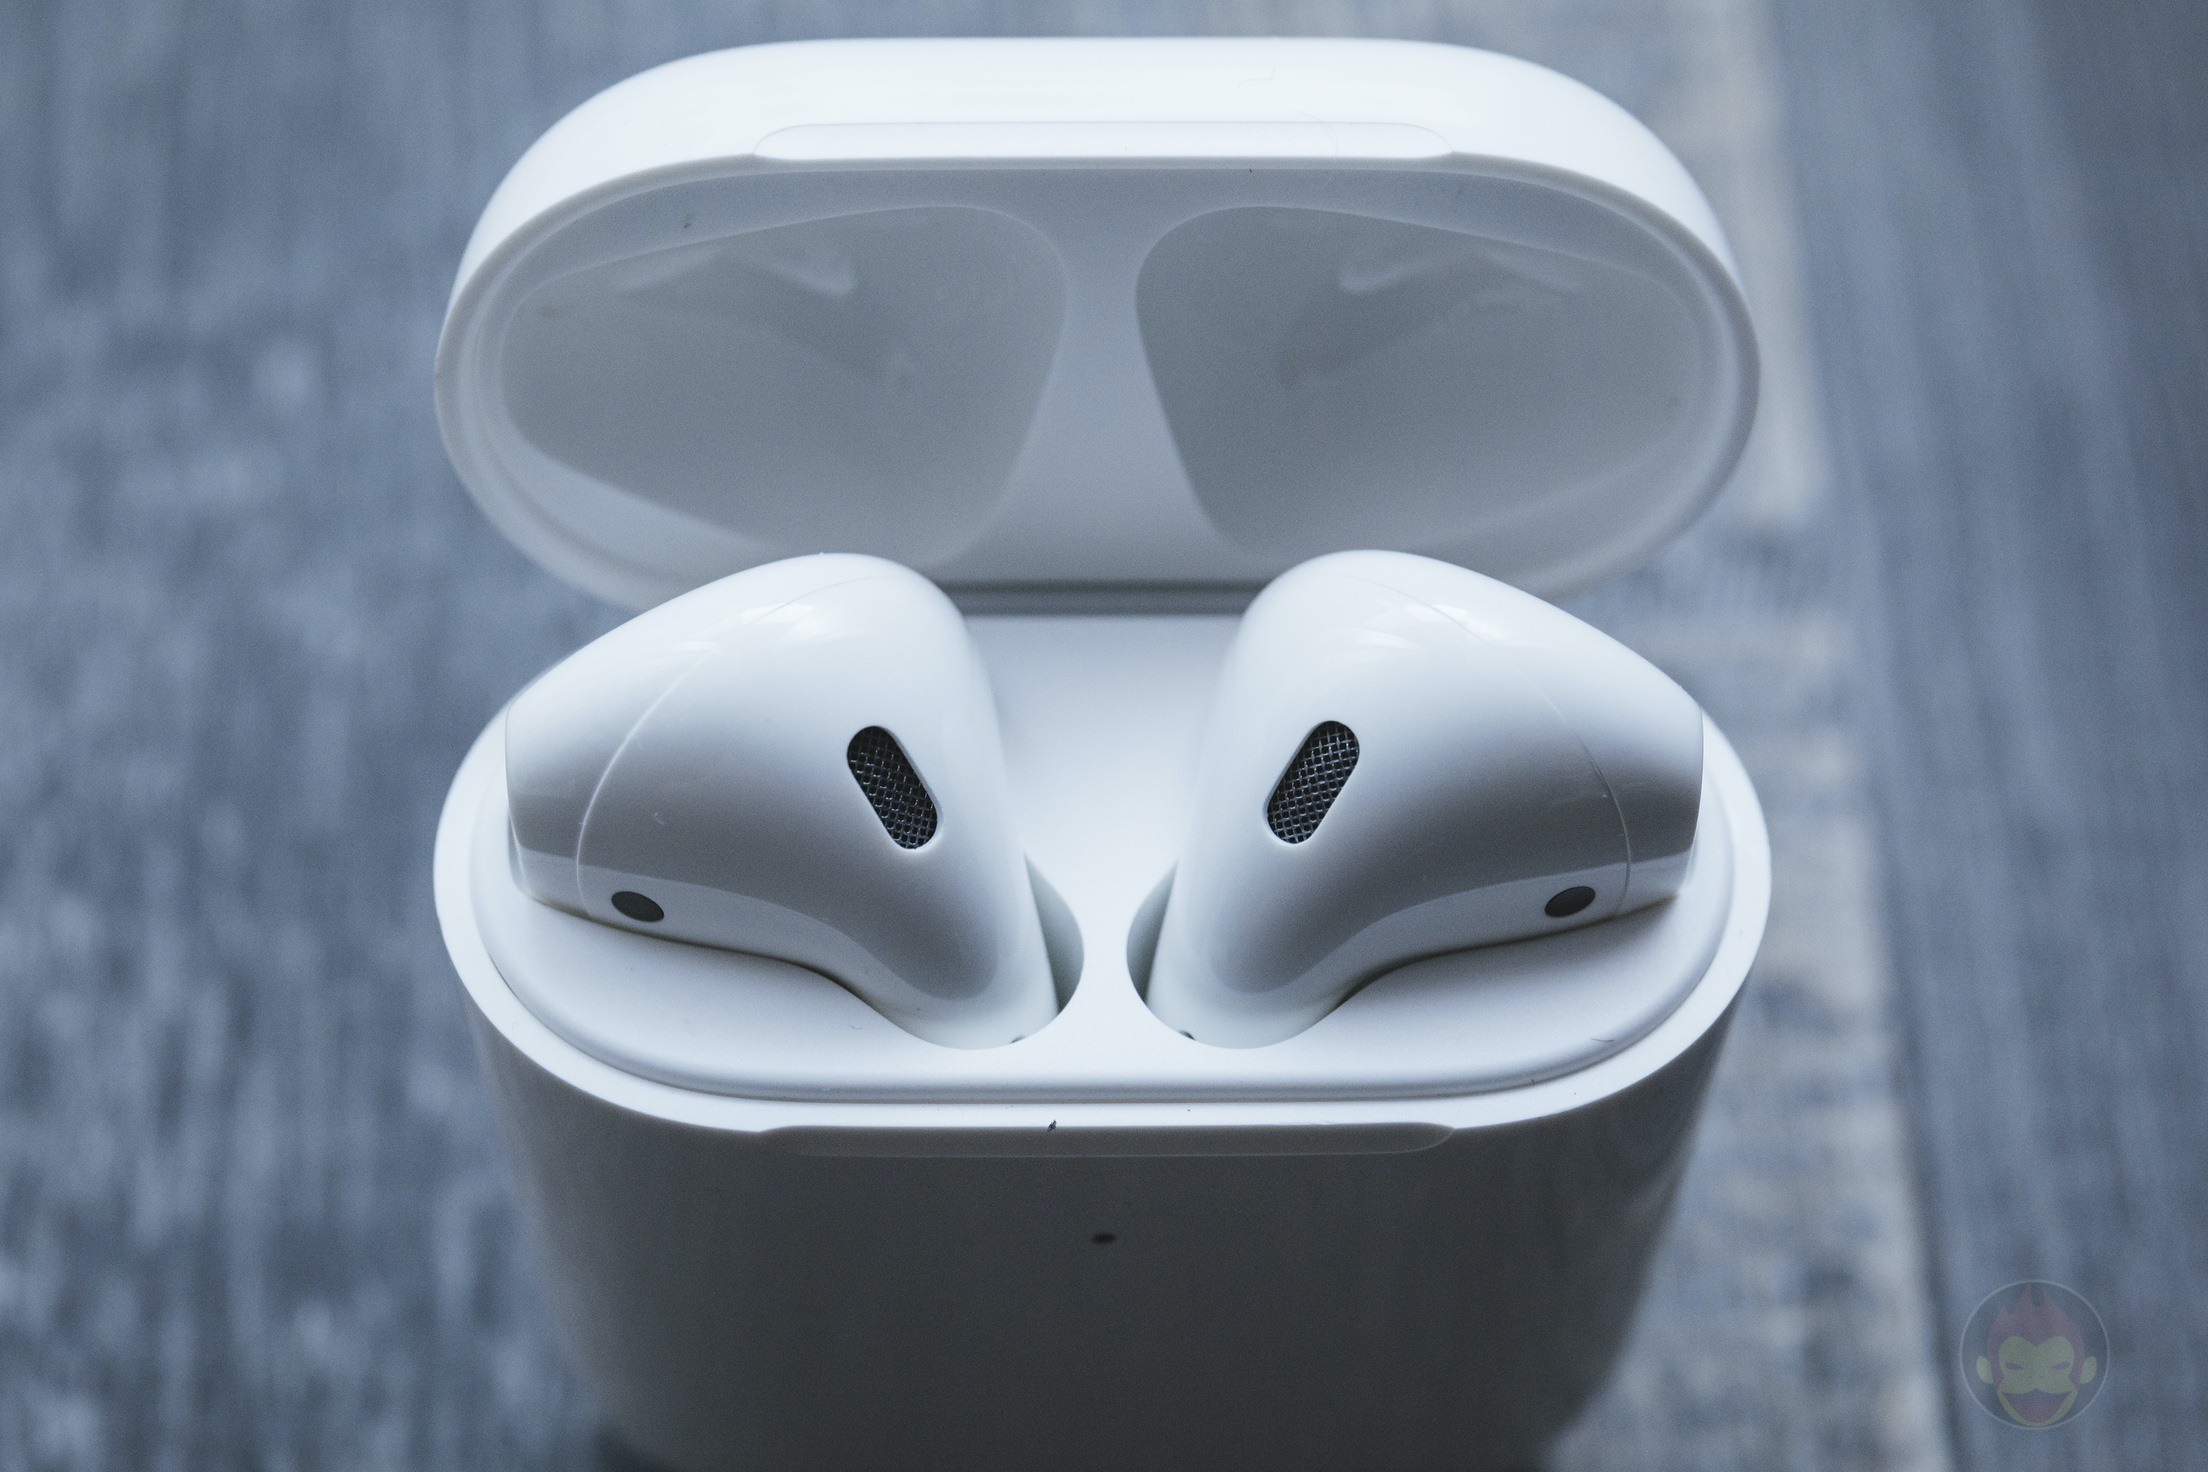 AirPods-2nd-Generation-2019-Review-19.jpg